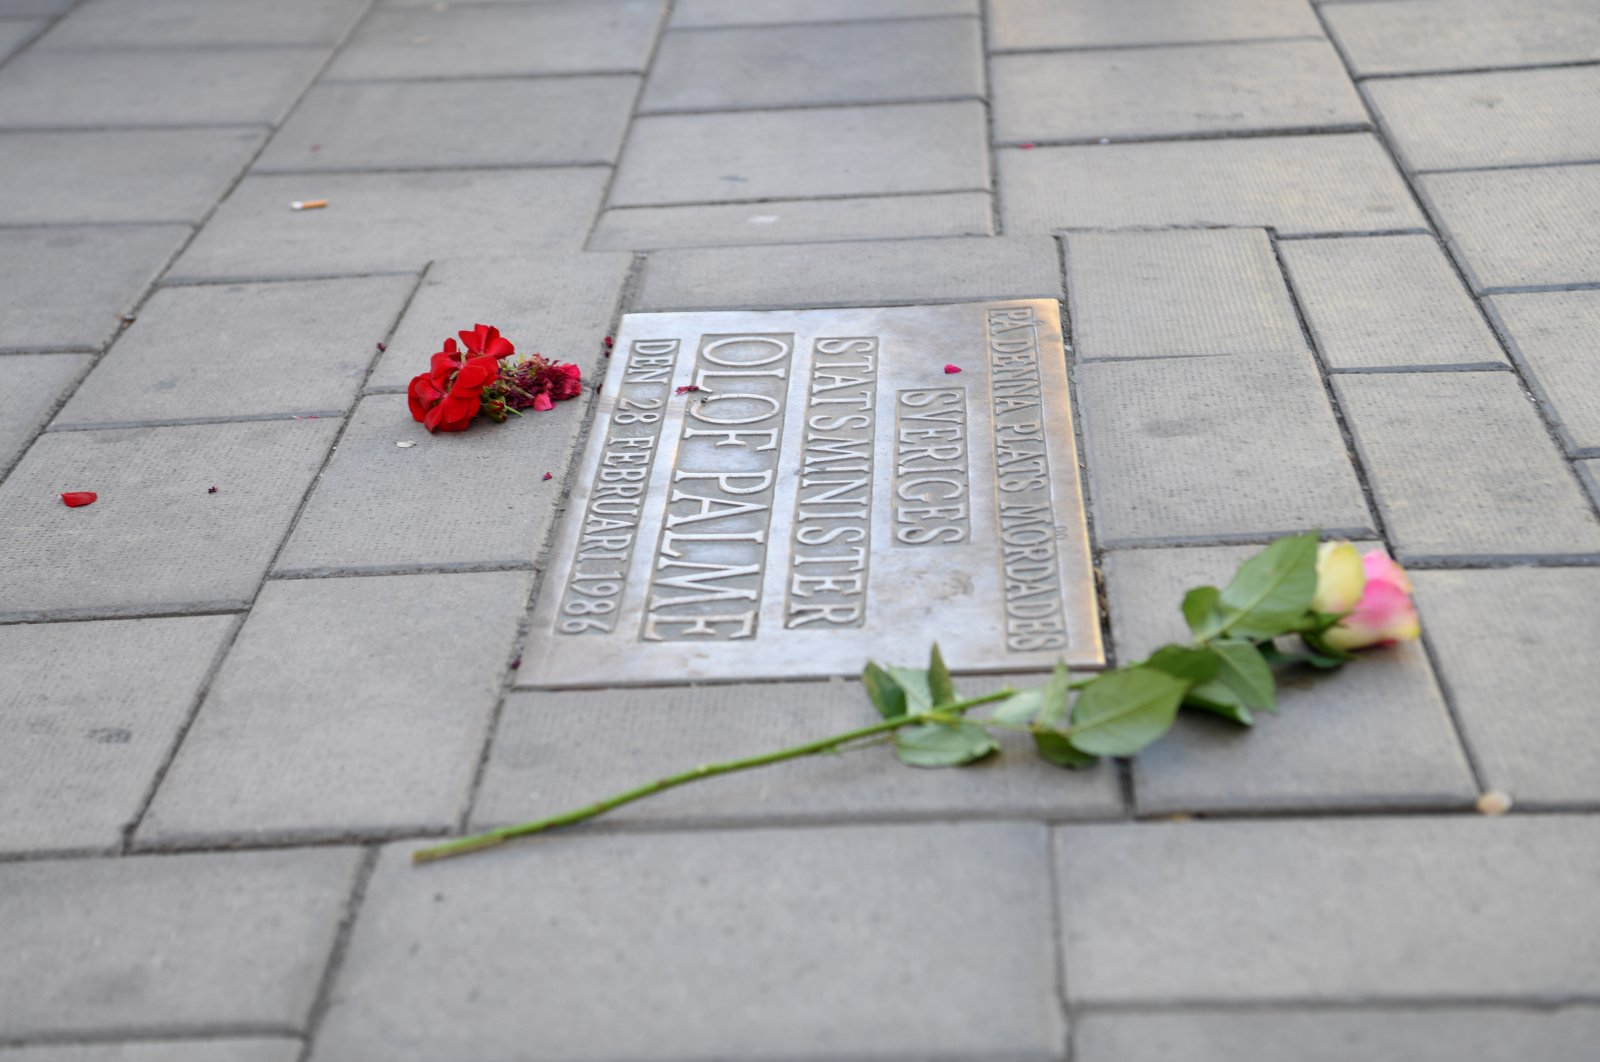 Flowers are placed by a memorial plaque showing the place where Swedish Prime Minister Olof Palme was shot dead in February 1986, in Stockholm, Sweden, Wednesday, June 10, 2020. (TT via AP)